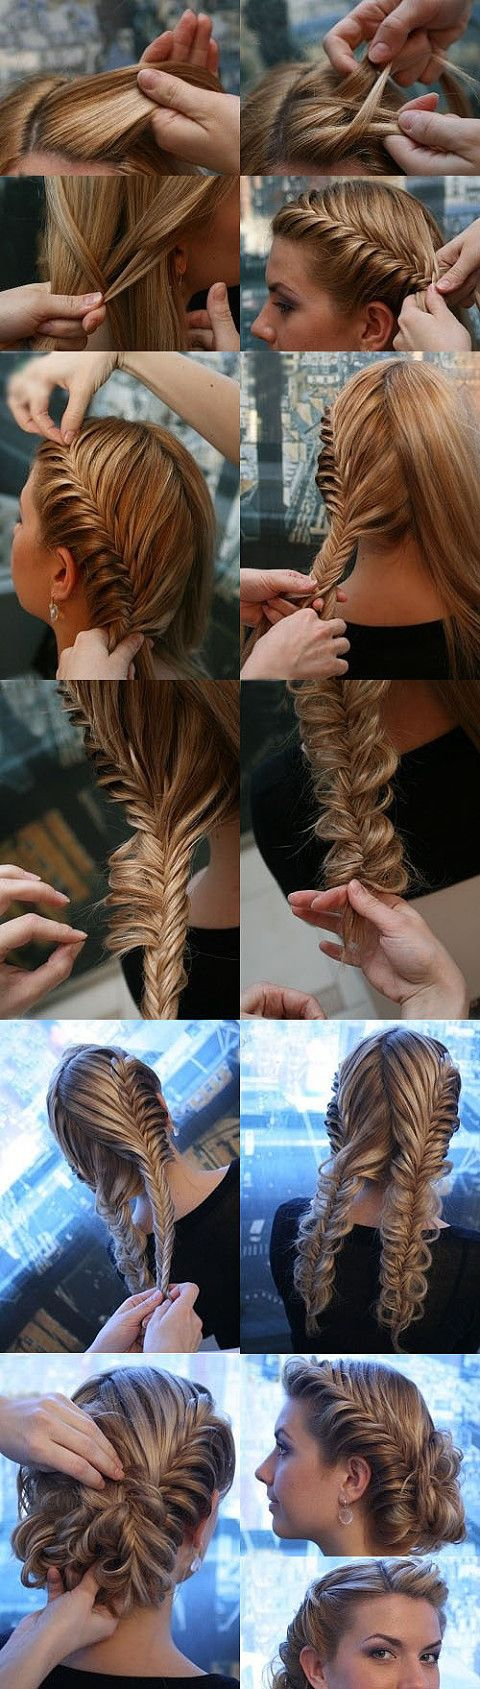 :): Fish Tail, Wedding Hair, Fishtail Updo, Long Hair, Prom Hair, Fishtail Bun, Hairstyle, Fishtail Braids, Hair Style